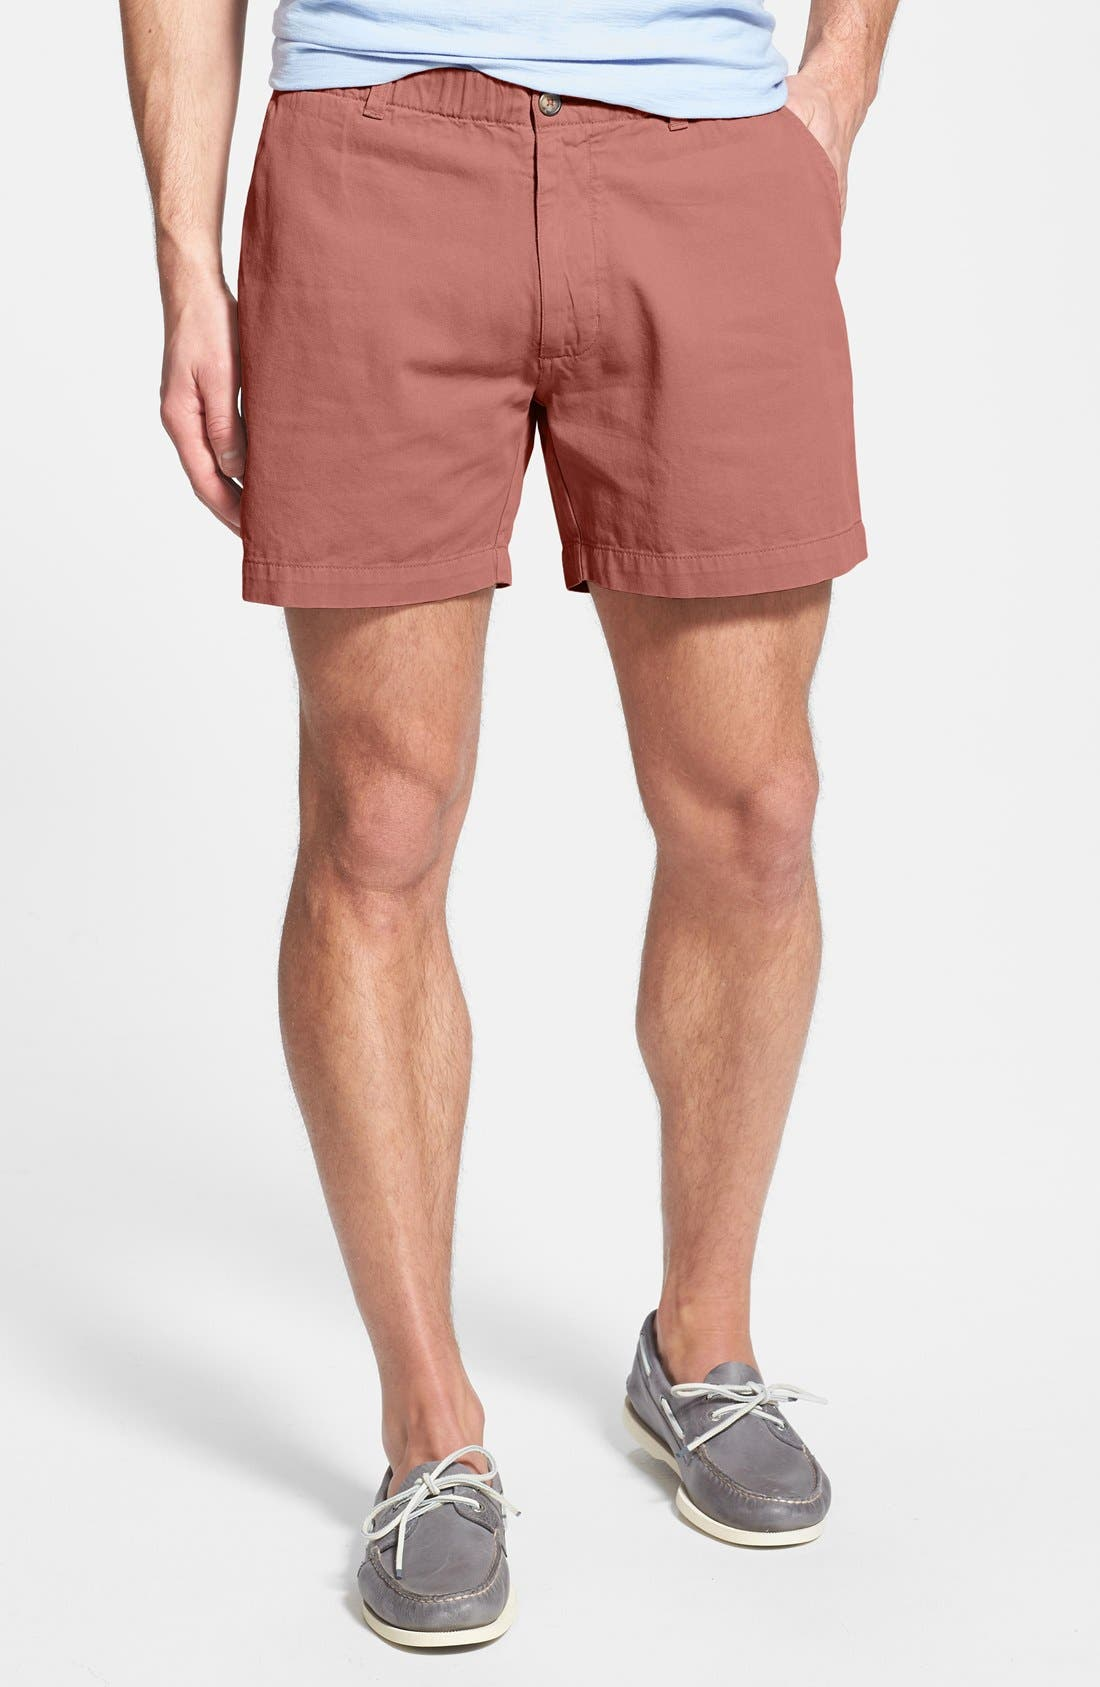 'Snappers' Vintage Washed Elastic Waistband Shorts,                             Main thumbnail 1, color,                             Nantucket Red